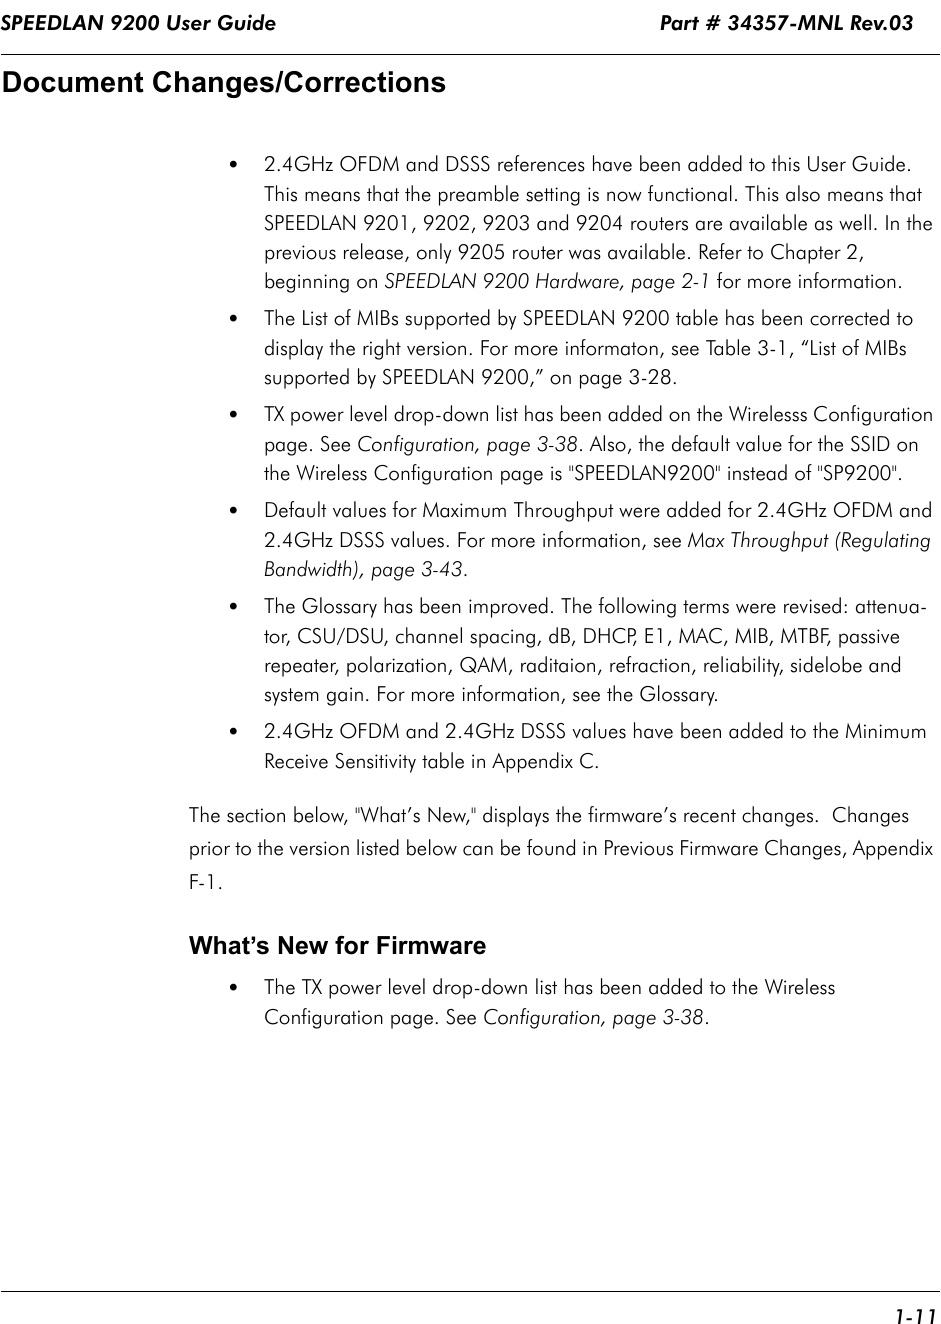 """SPEEDLAN 9200 User Guide                                                              Part # 34357-MNL Rev.03      1-11                                                                                                                                                              Document Changes/Corrections •2.4GHz OFDM and DSSS references have been added to this User Guide. This means that the preamble setting is now functional. This also means that SPEEDLAN 9201, 9202, 9203 and 9204 routers are available as well. In the previous release, only 9205 router was available. Refer to Chapter 2, beginning on SPEEDLAN 9200 Hardware, page 2-1 for more information.  •The List of MIBs supported by SPEEDLAN 9200 table has been corrected to display the right version. For more informaton, see Table 3-1, """"List of MIBs supported by SPEEDLAN 9200,"""" on page 3-28.•TX power level drop-down list has been added on the Wirelesss Configuration page. See Configuration, page 3-38. Also, the default value for the SSID on the Wireless Configuration page is """"SPEEDLAN9200"""" instead of """"SP9200"""".•Default values for Maximum Throughput were added for 2.4GHz OFDM and 2.4GHz DSSS values. For more information, see Max Throughput (Regulating Bandwidth), page 3-43.•The Glossary has been improved. The following terms were revised: attenua-tor, CSU/DSU, channel spacing, dB, DHCP, E1, MAC, MIB, MTBF, passive repeater, polarization, QAM, raditaion, refraction, reliability, sidelobe andsystem gain. For more information, see the Glossary. •2.4GHz OFDM and 2.4GHz DSSS values have been added to the Minimum Receive Sensitivity table in Appendix C.The section below, """"What's New,"""" displays the firmware's recent changes.  Changes prior to the version listed below can be found in Previous Firmware Changes, Appendix F-1.What's New for Firmware•The TX power level drop-down list has been added to the Wireless Configuration page. See Configuration, page 3-38."""